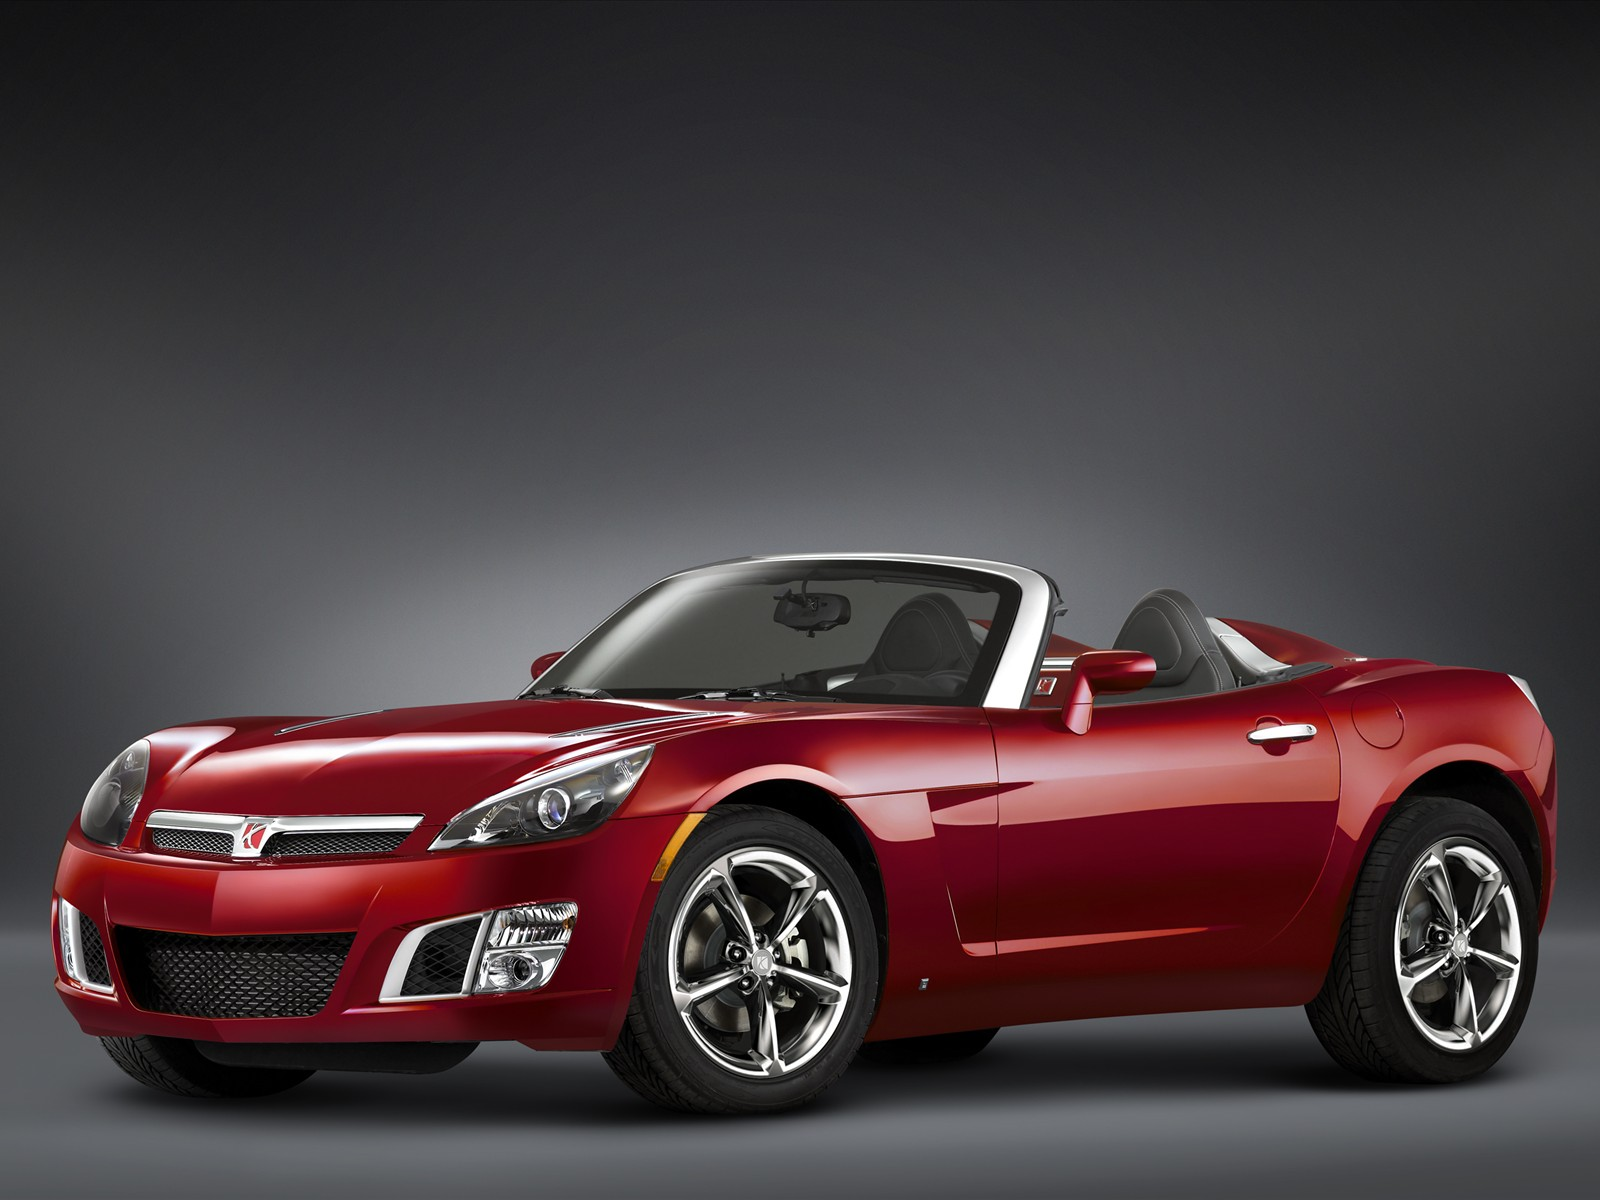 ultimate machines 2009 saturn sky red line. Black Bedroom Furniture Sets. Home Design Ideas